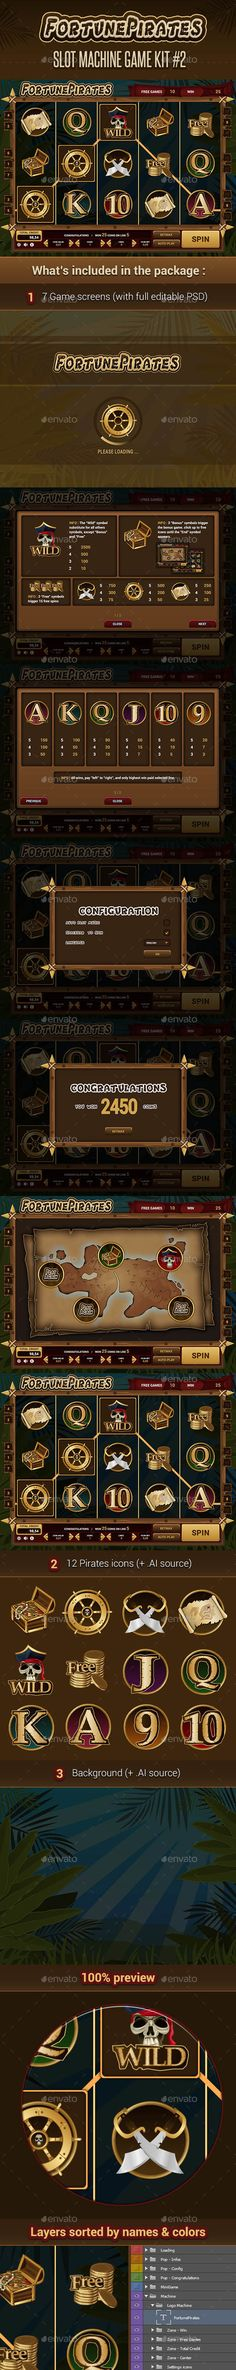 Fortune Pirates  Slot Machine Game Kit — Photoshop PSD #chest #slot machine • Available here → https://graphicriver.net/item/fortune-pirates-slot-machine-game-kit/17204712?ref=pxcr